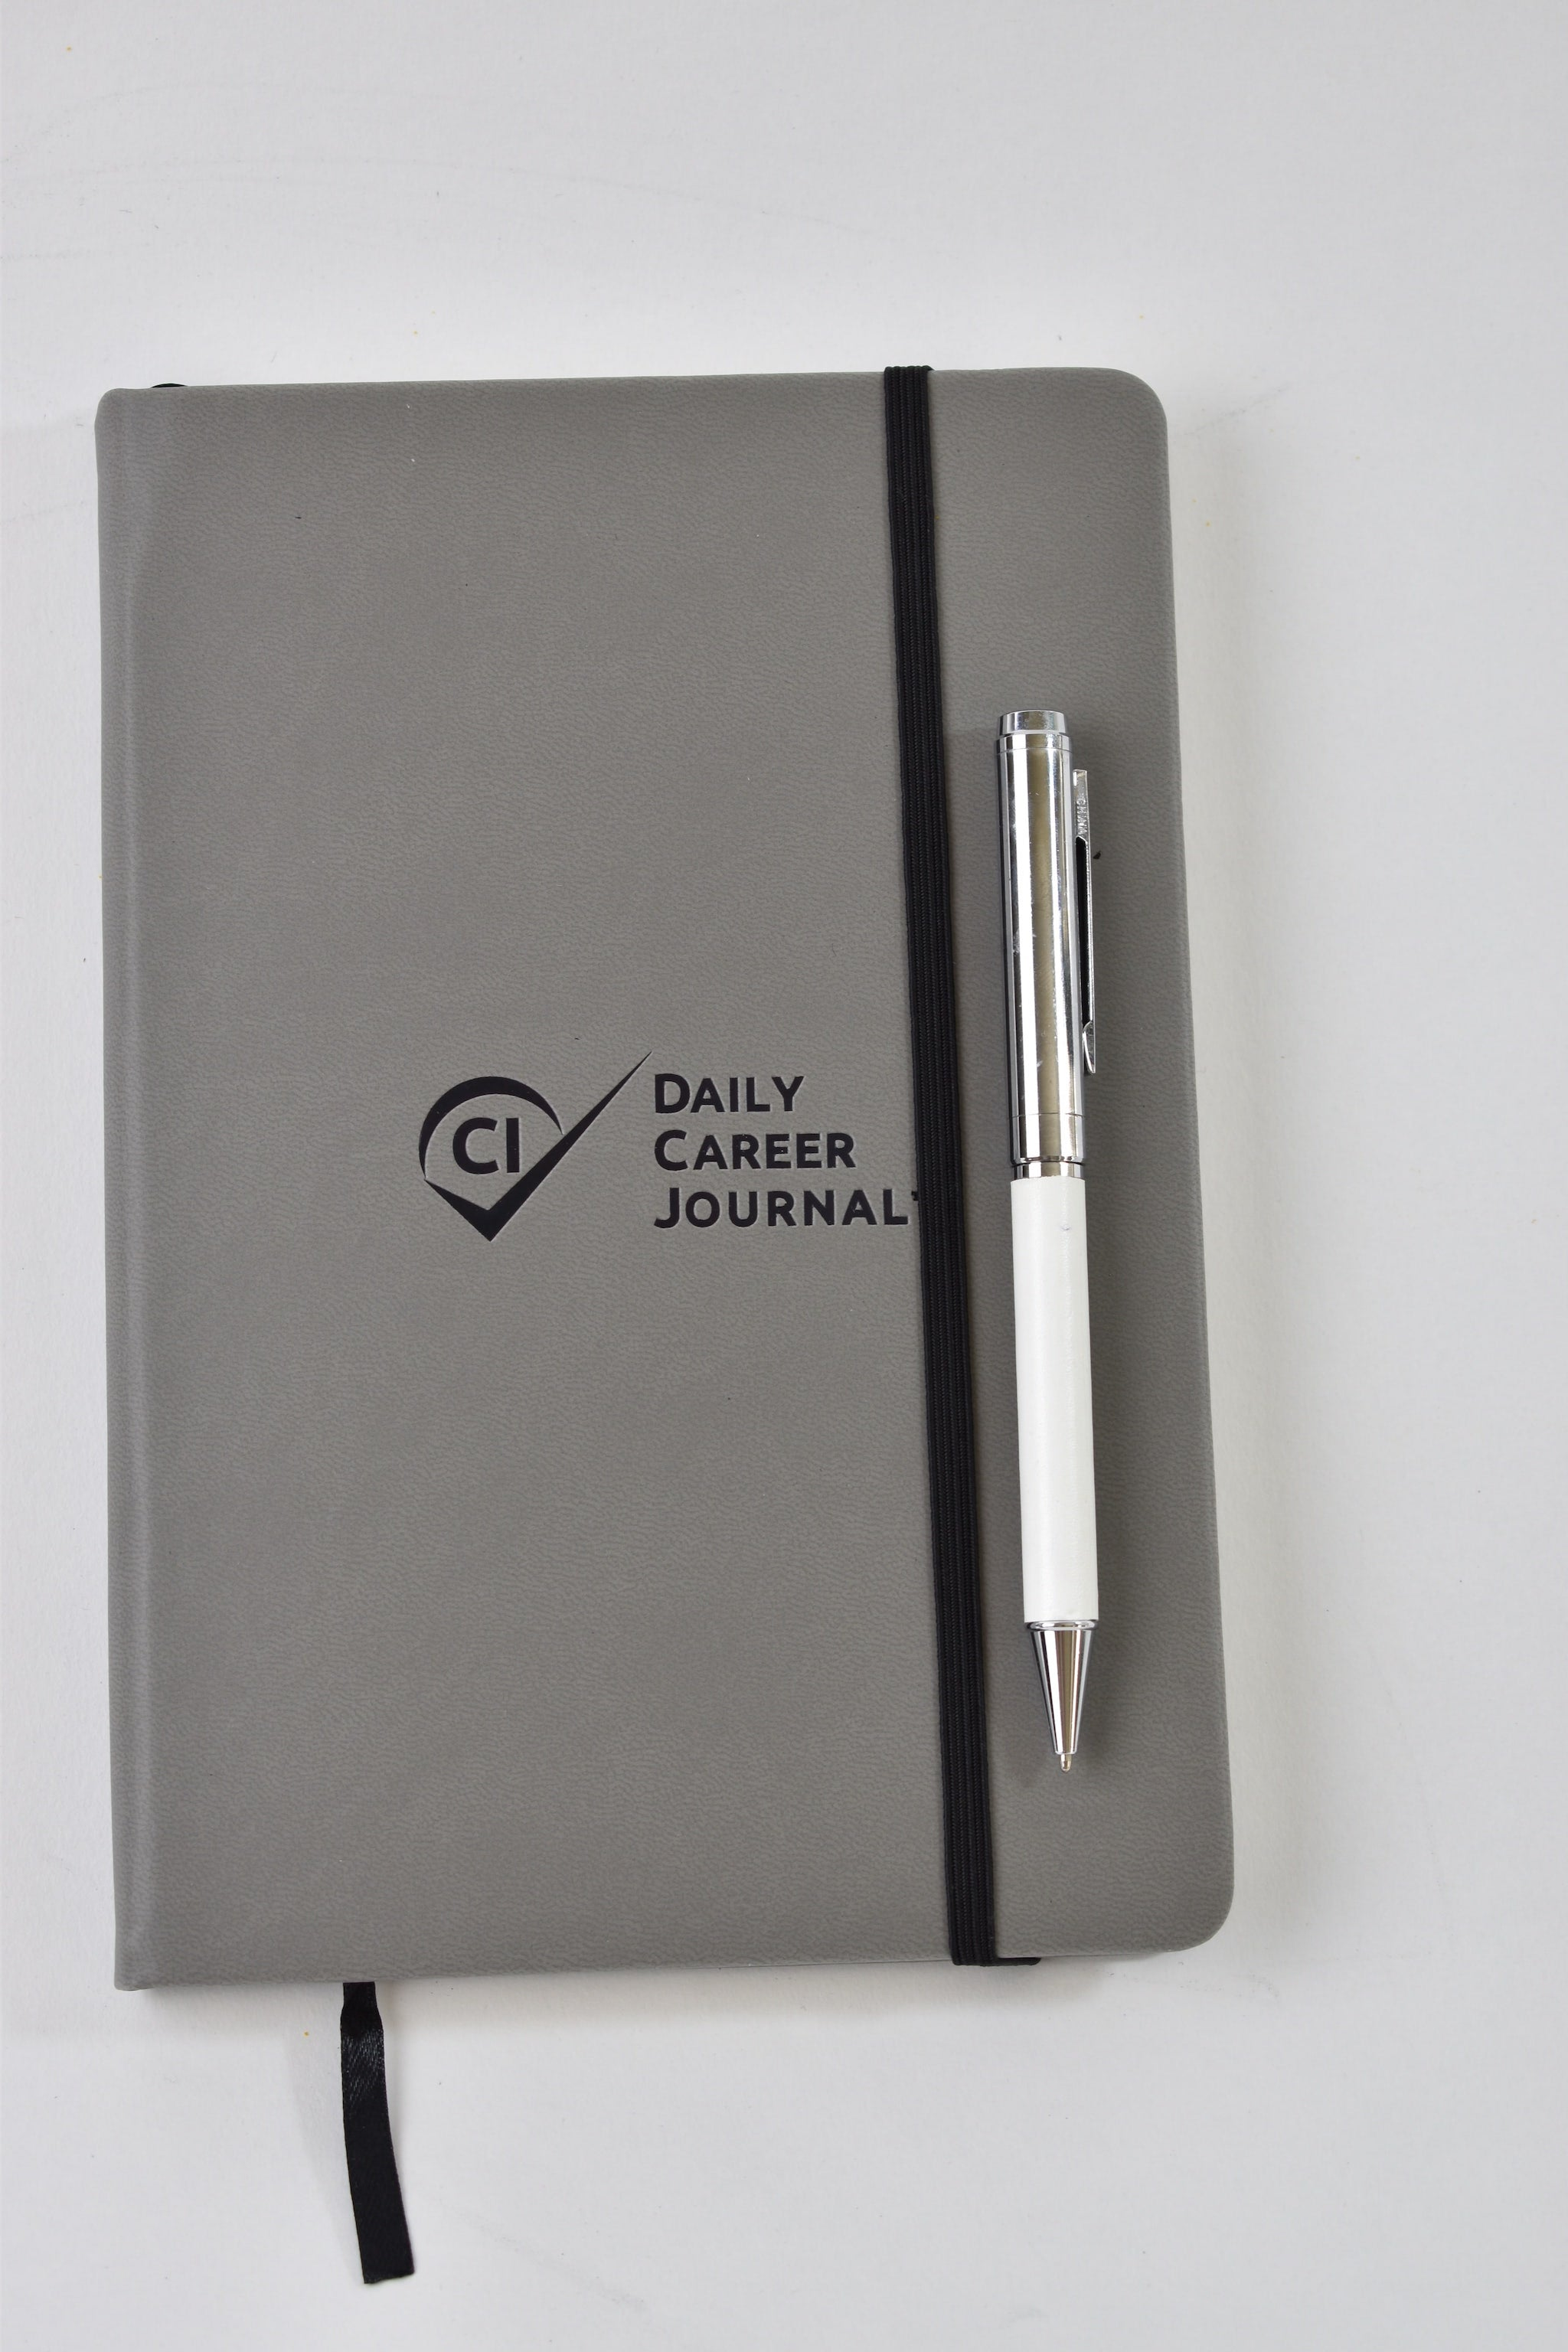 Daily Career Journal